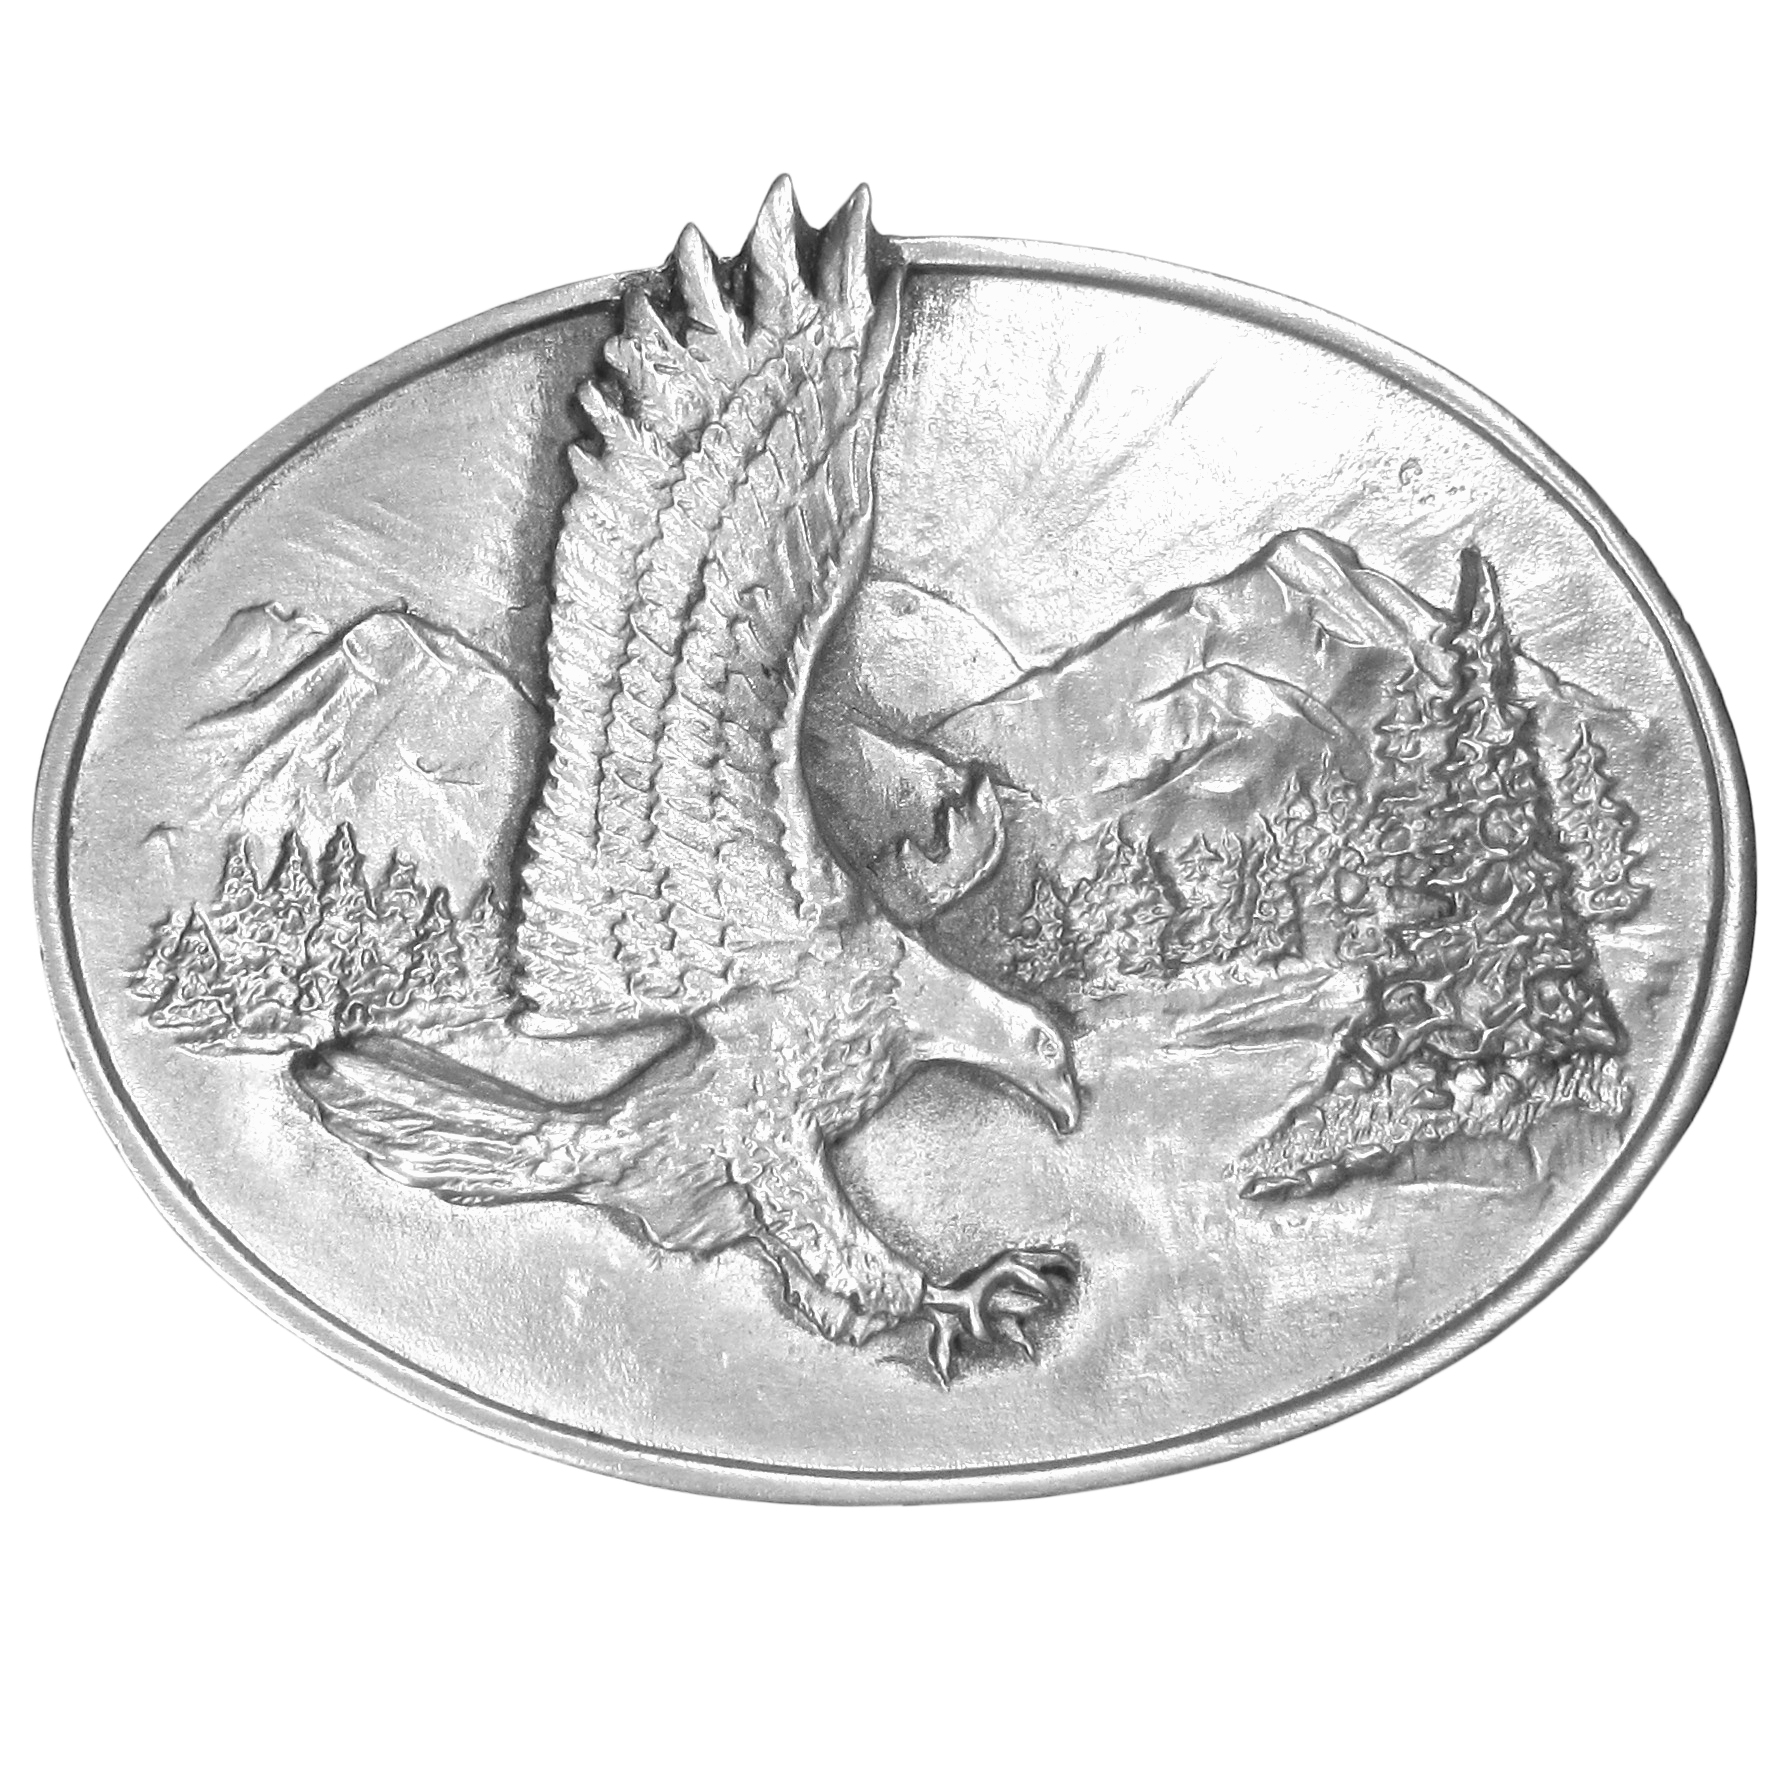 """Eagle Antiqued Belt Buckle - """"This oval buckle has a beautiful eagle with it's claws outstretched as if to capture prey. In the background there are mountains, trees, a lake and the sunshine peeking above a mountain range. This exquisitely carved buckle is made of fully cast metal with a standard bale that fits up to 2"""""""" belts."""""""